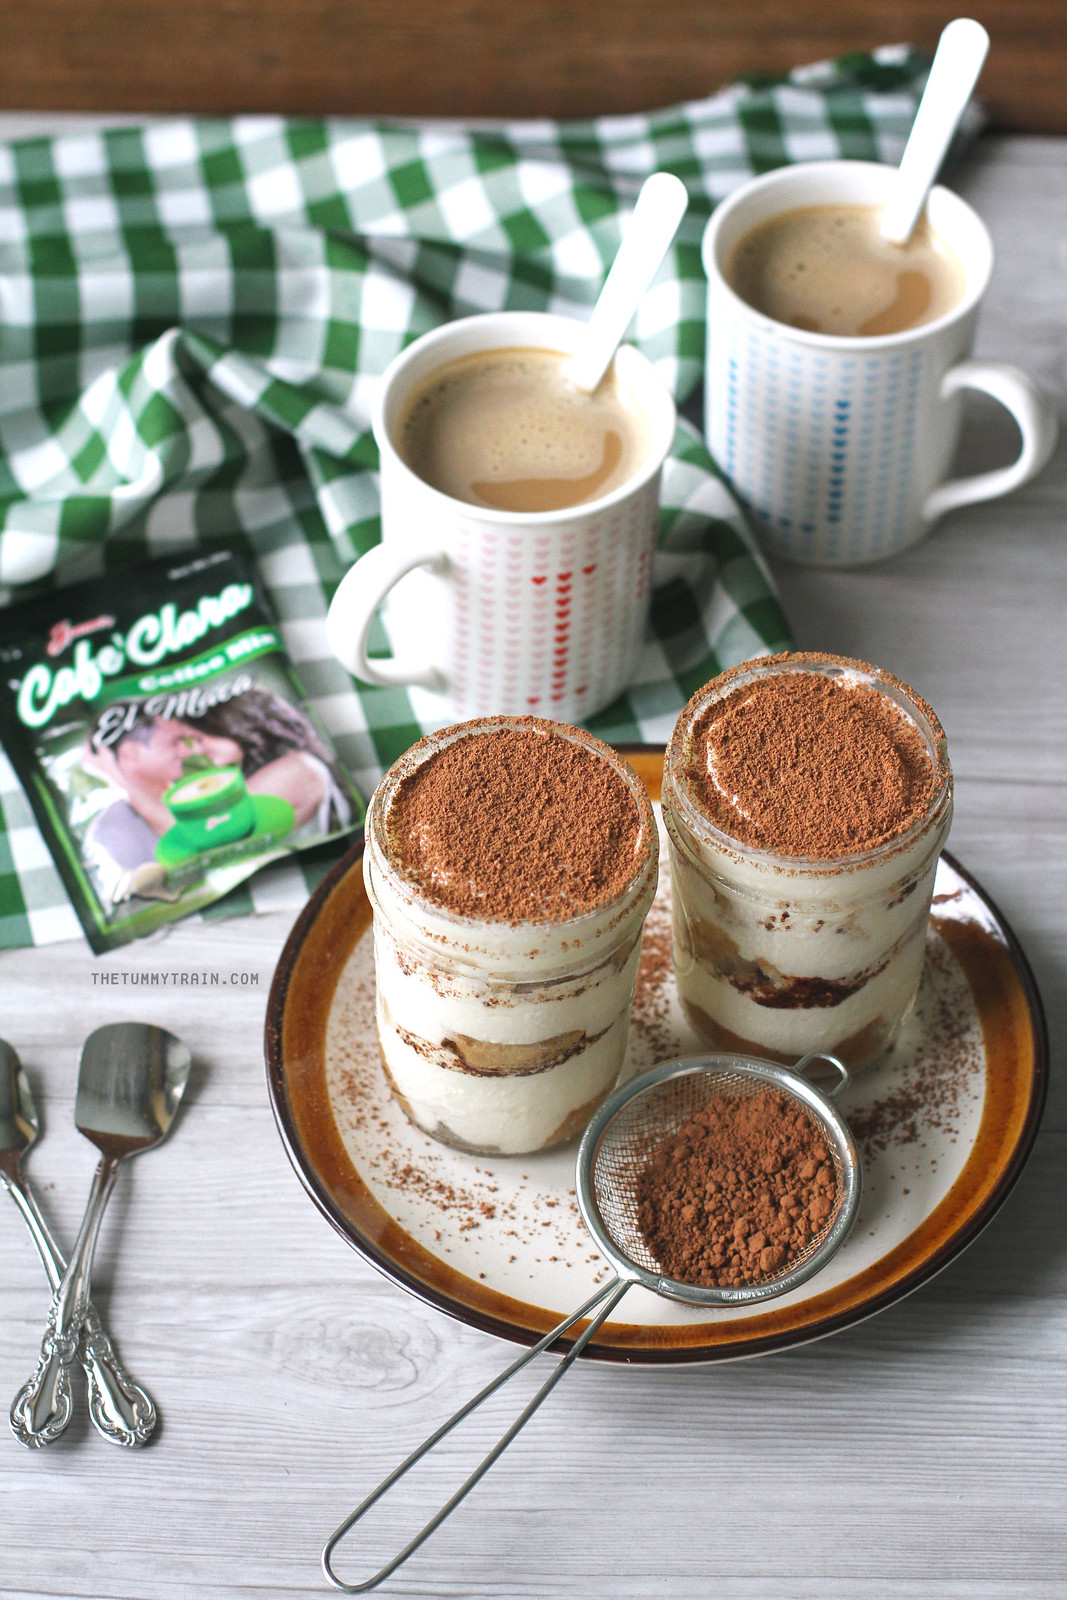 35821145843 3b67b7b4cb h - Romance is in the air with this Easy Tiramisu for Two (feat. Jimm's Cafe Clara)